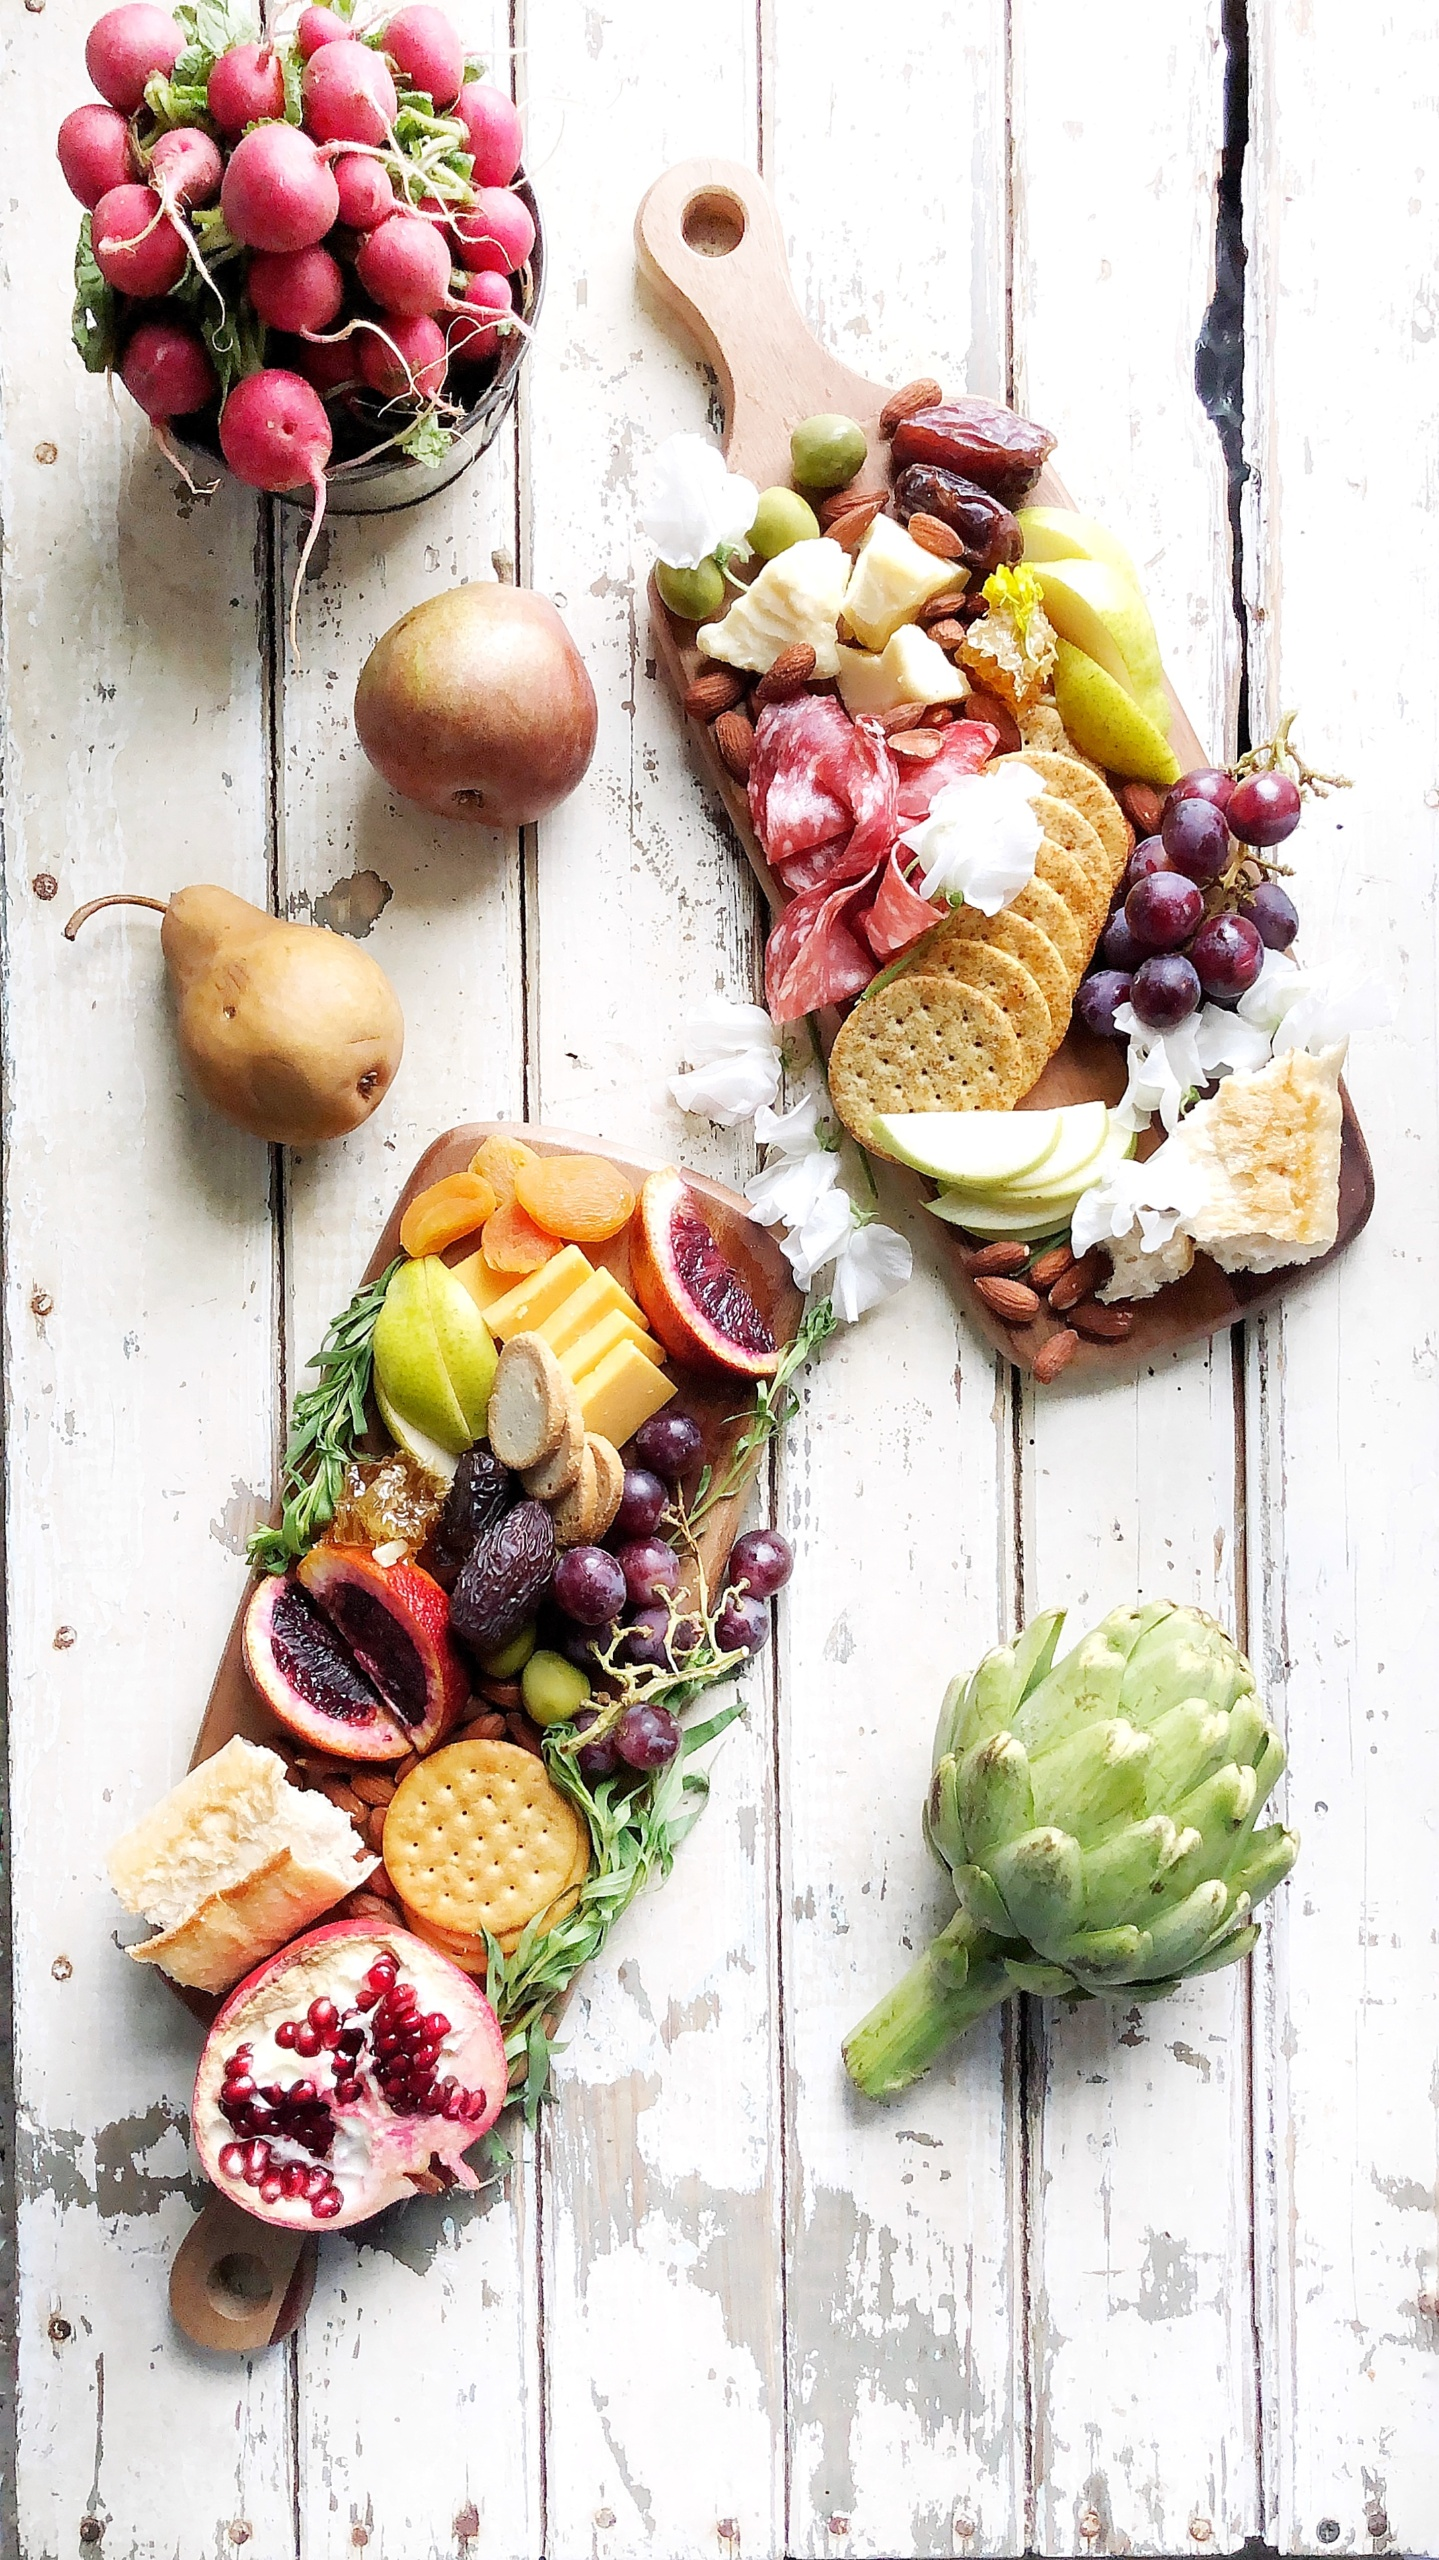 two charcuterie boards next to an artichoke, radishes and pears